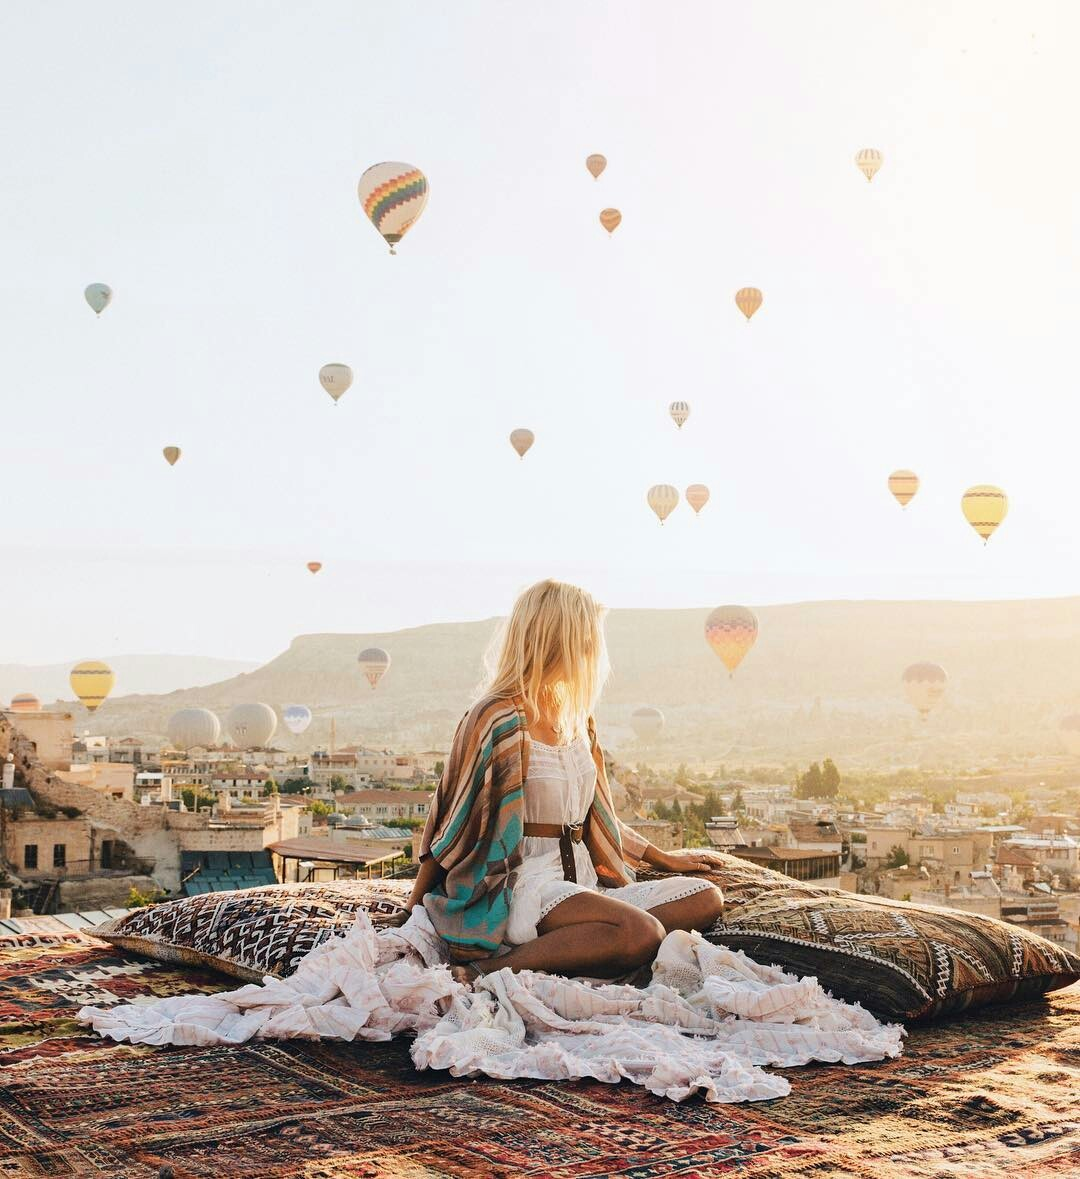 adventure, hot-air balloon, lifestyle, love, magic